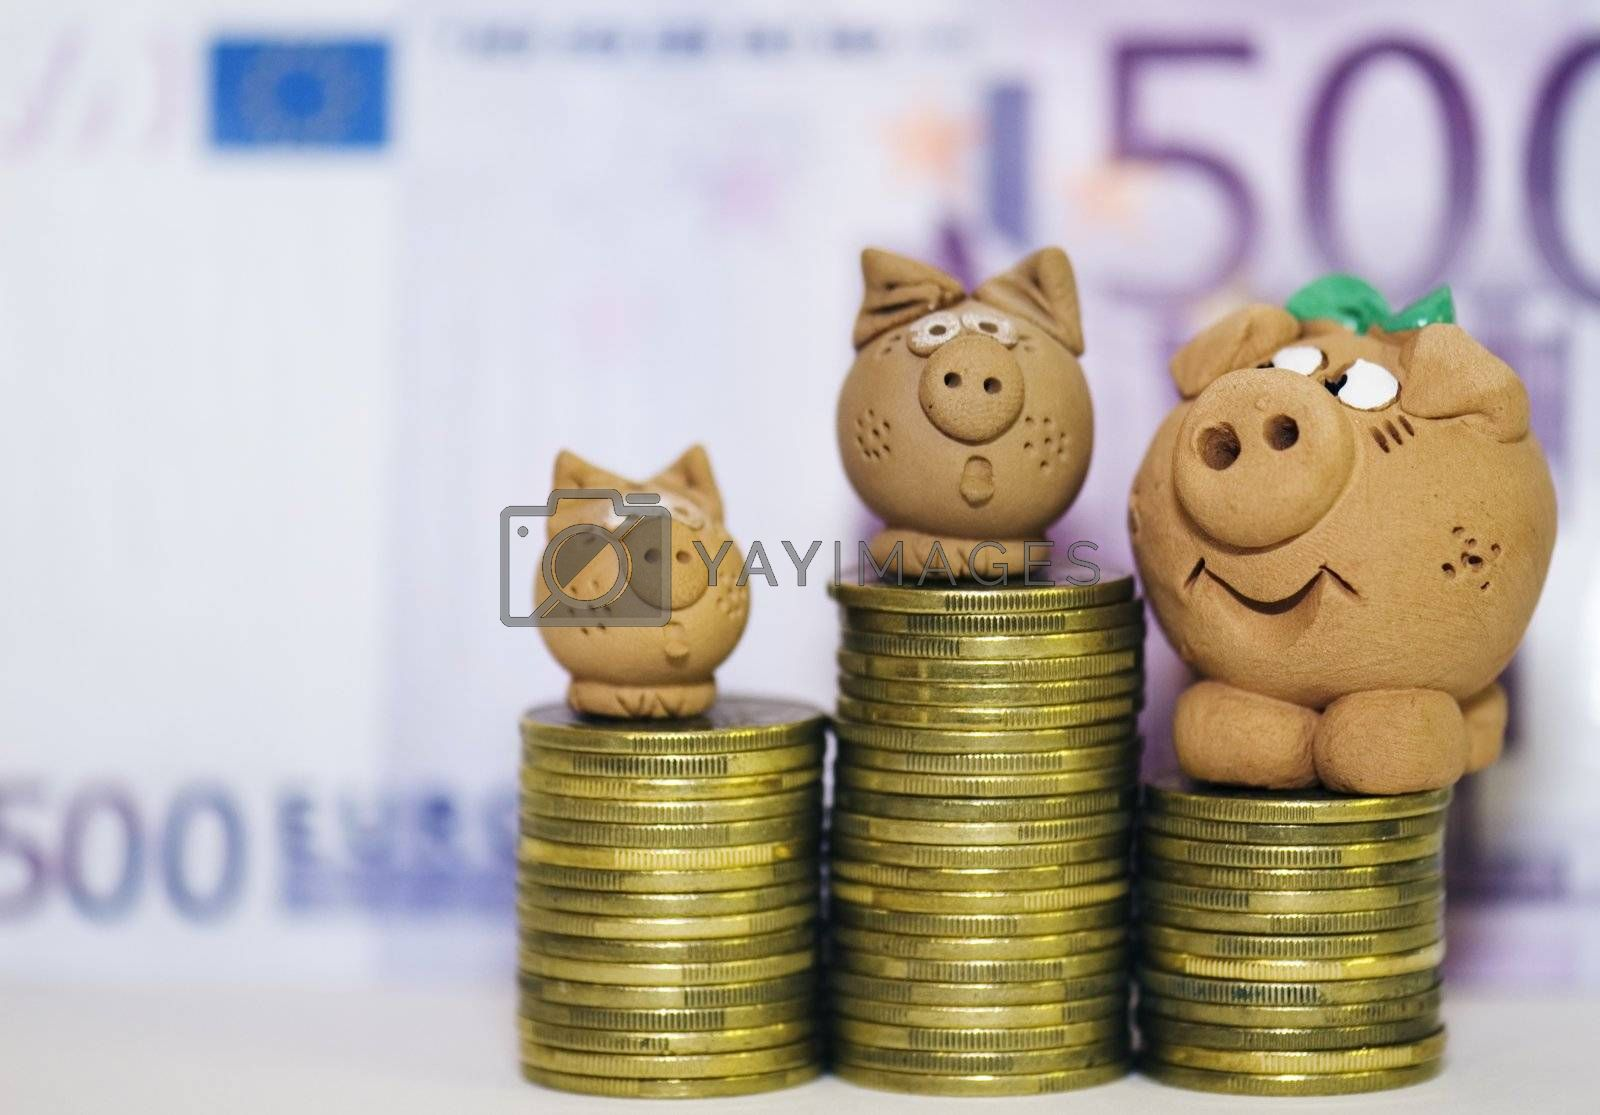 The family of pigs dreams of the big money